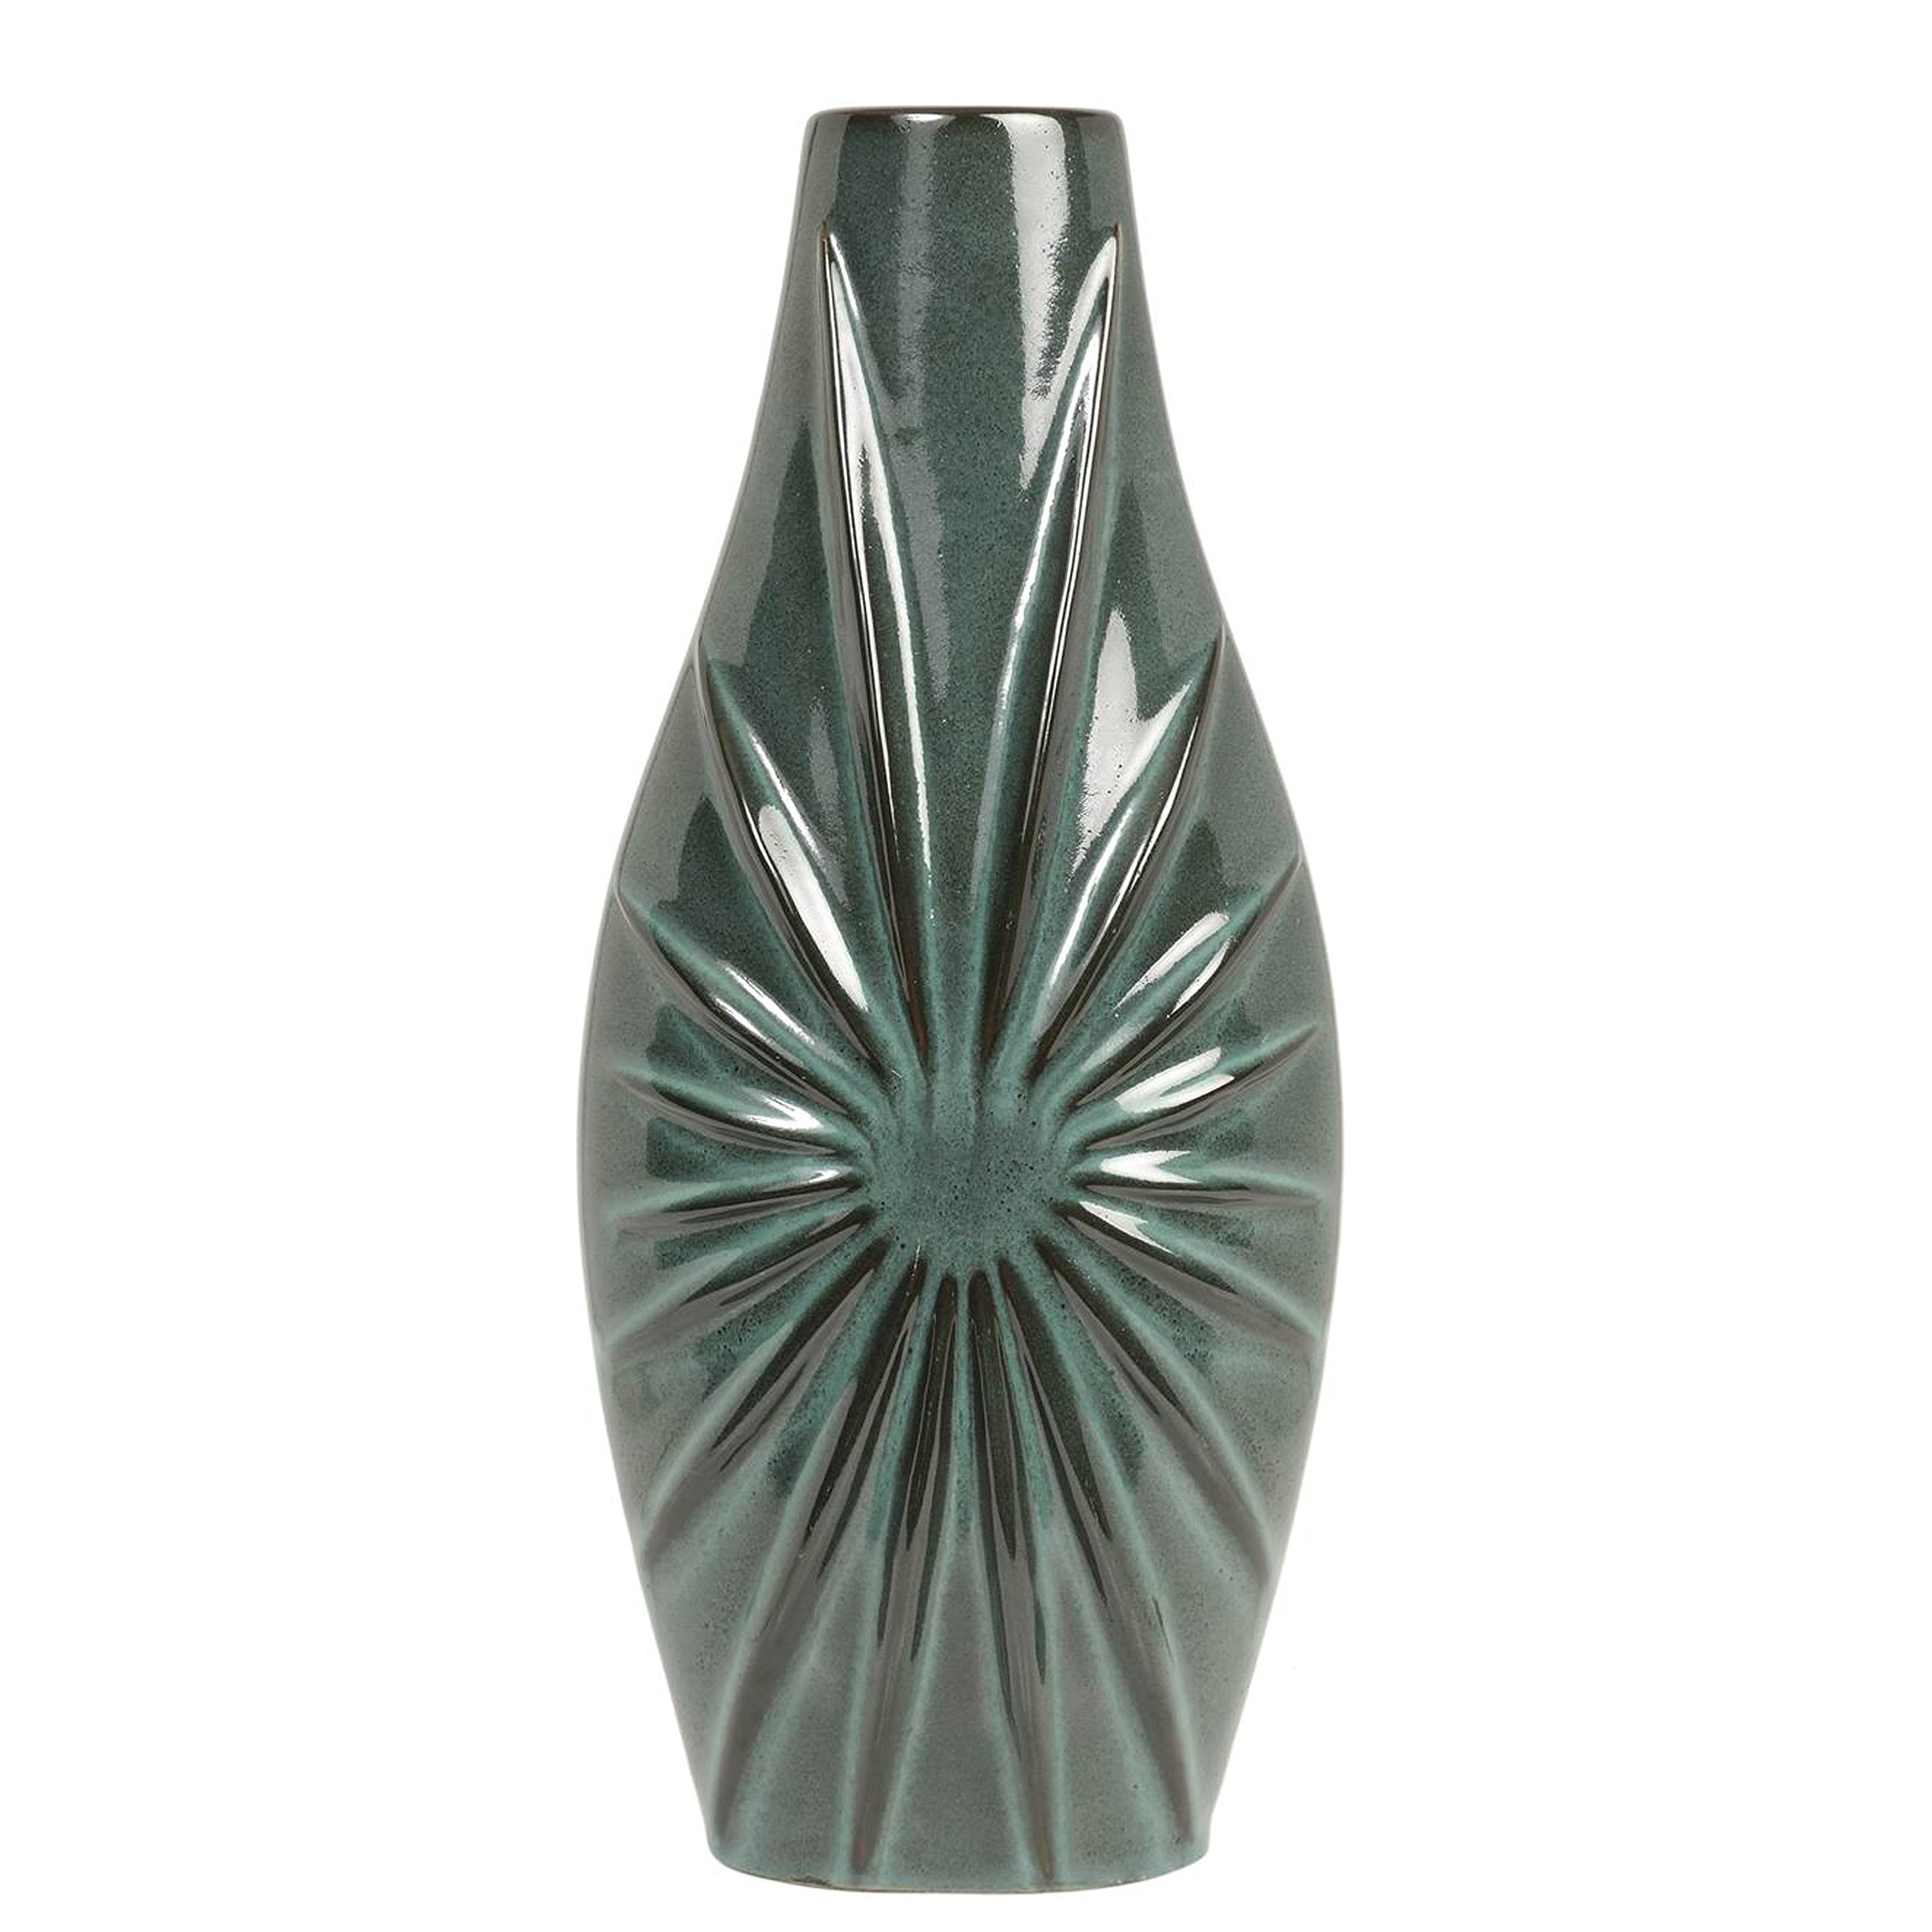 Hosley 14'' High Blue/Green Ceramic Starburst Vase. Perfect for Wedding or Special Occasion, Special Events, Aromatherapy, Spa, Reiki, Meditation Settings O9